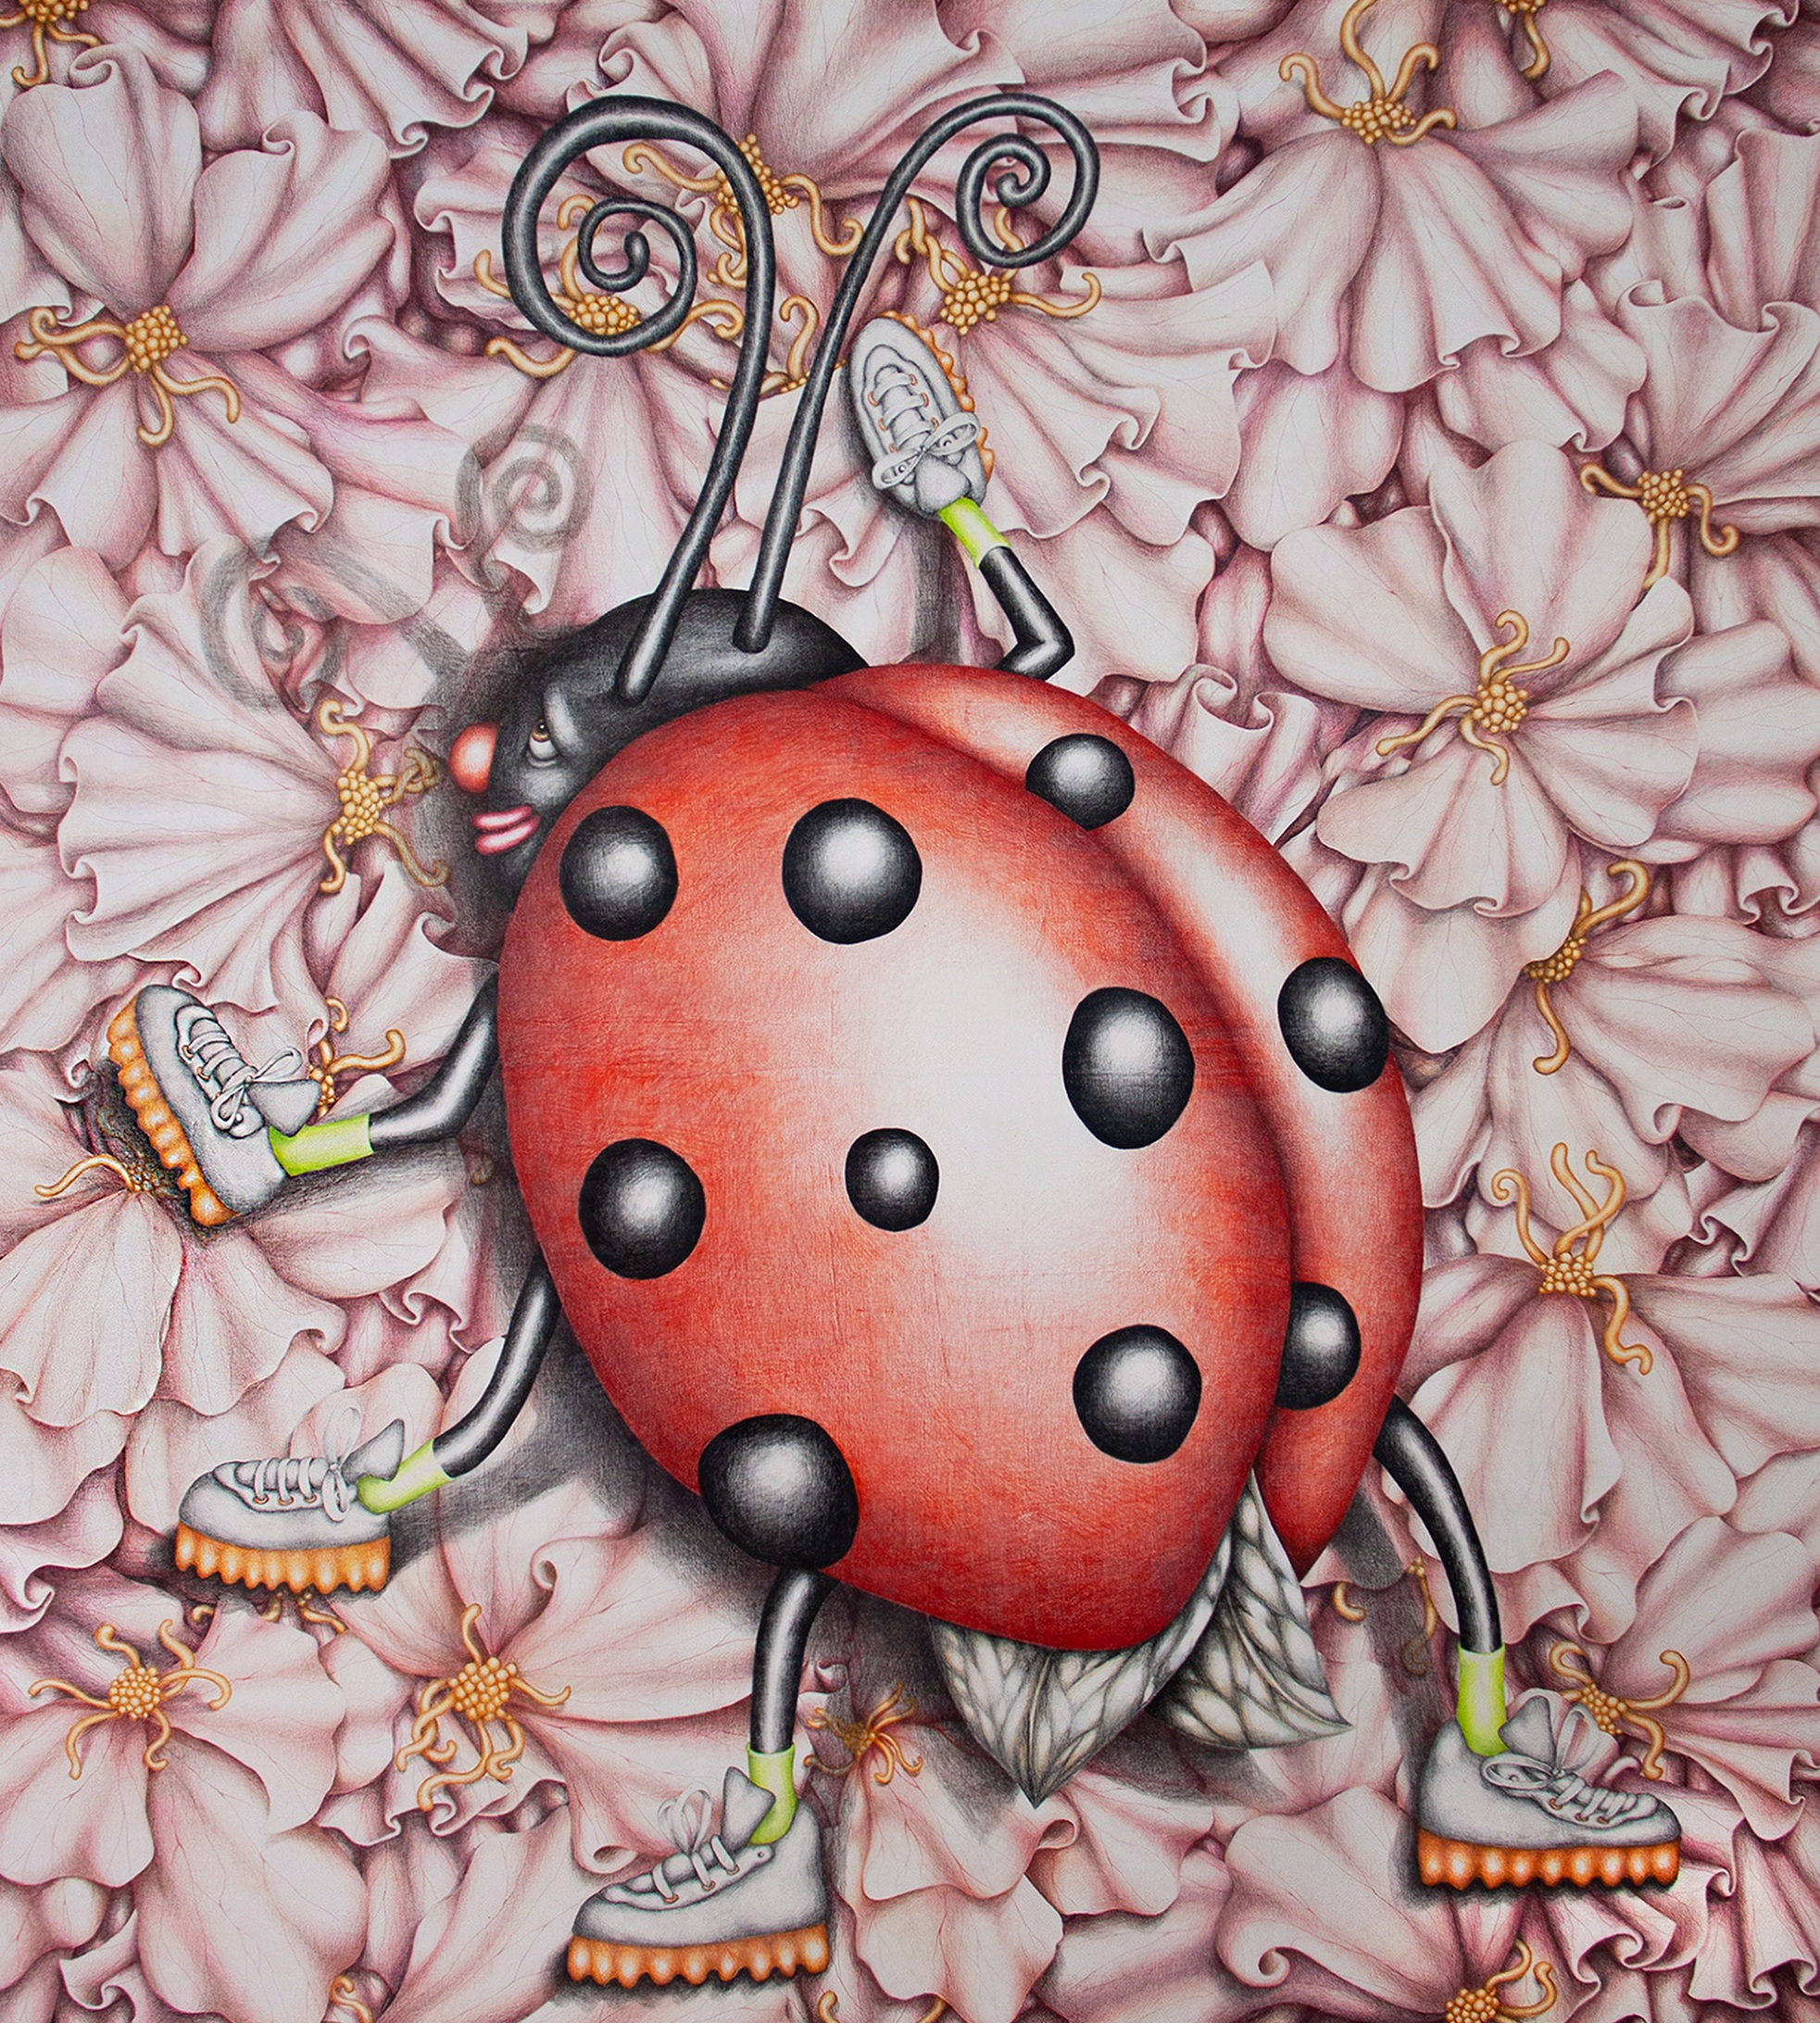 Beep the Ladybug Messing Everything Up, 2019, coloured pencil on canvas